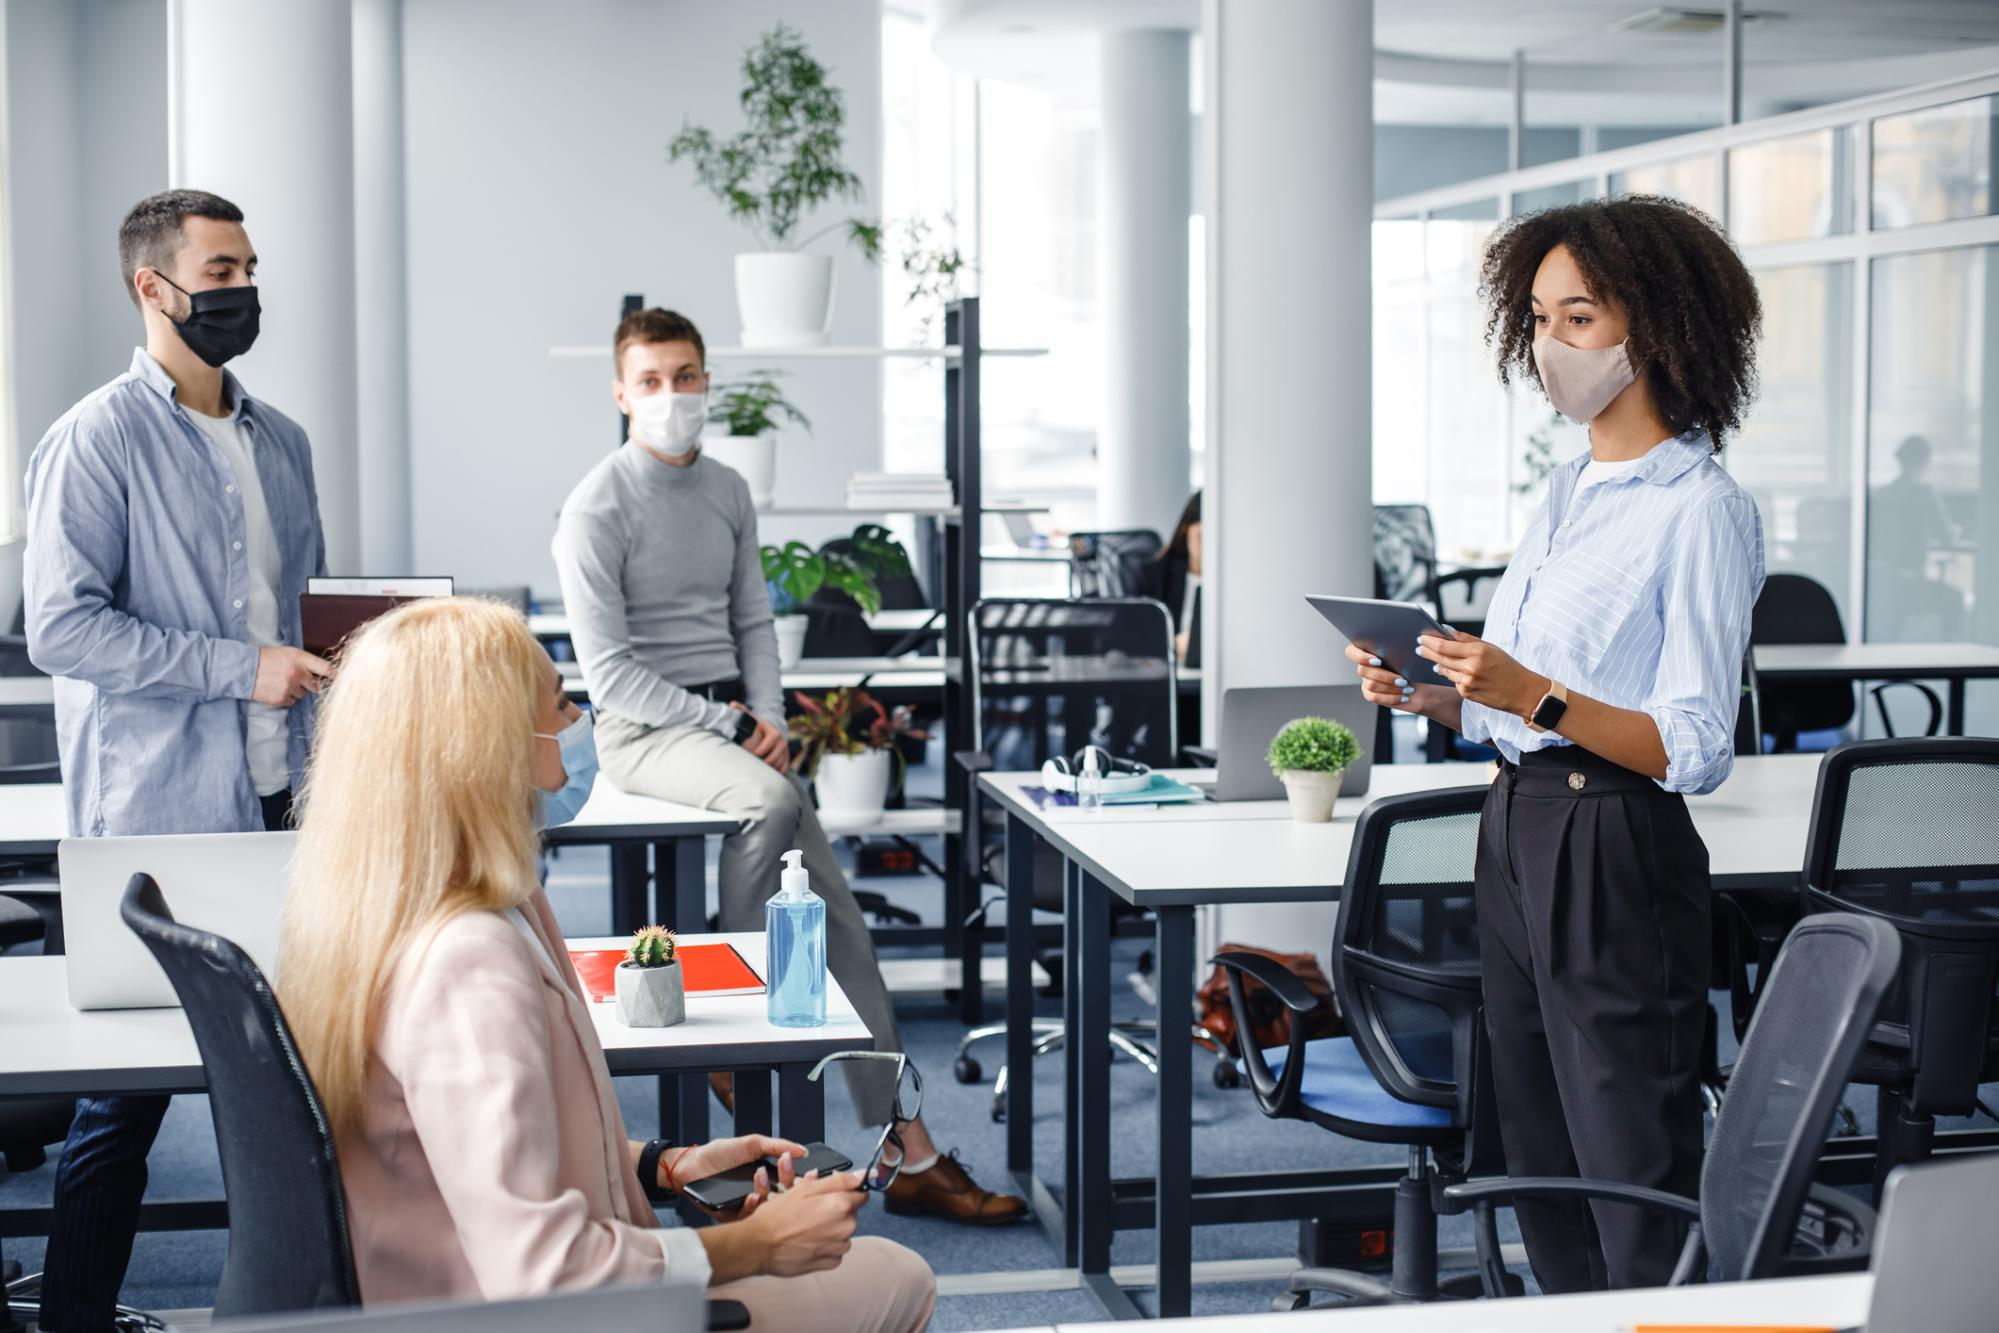 Group of office staff wearing masks in a meeting